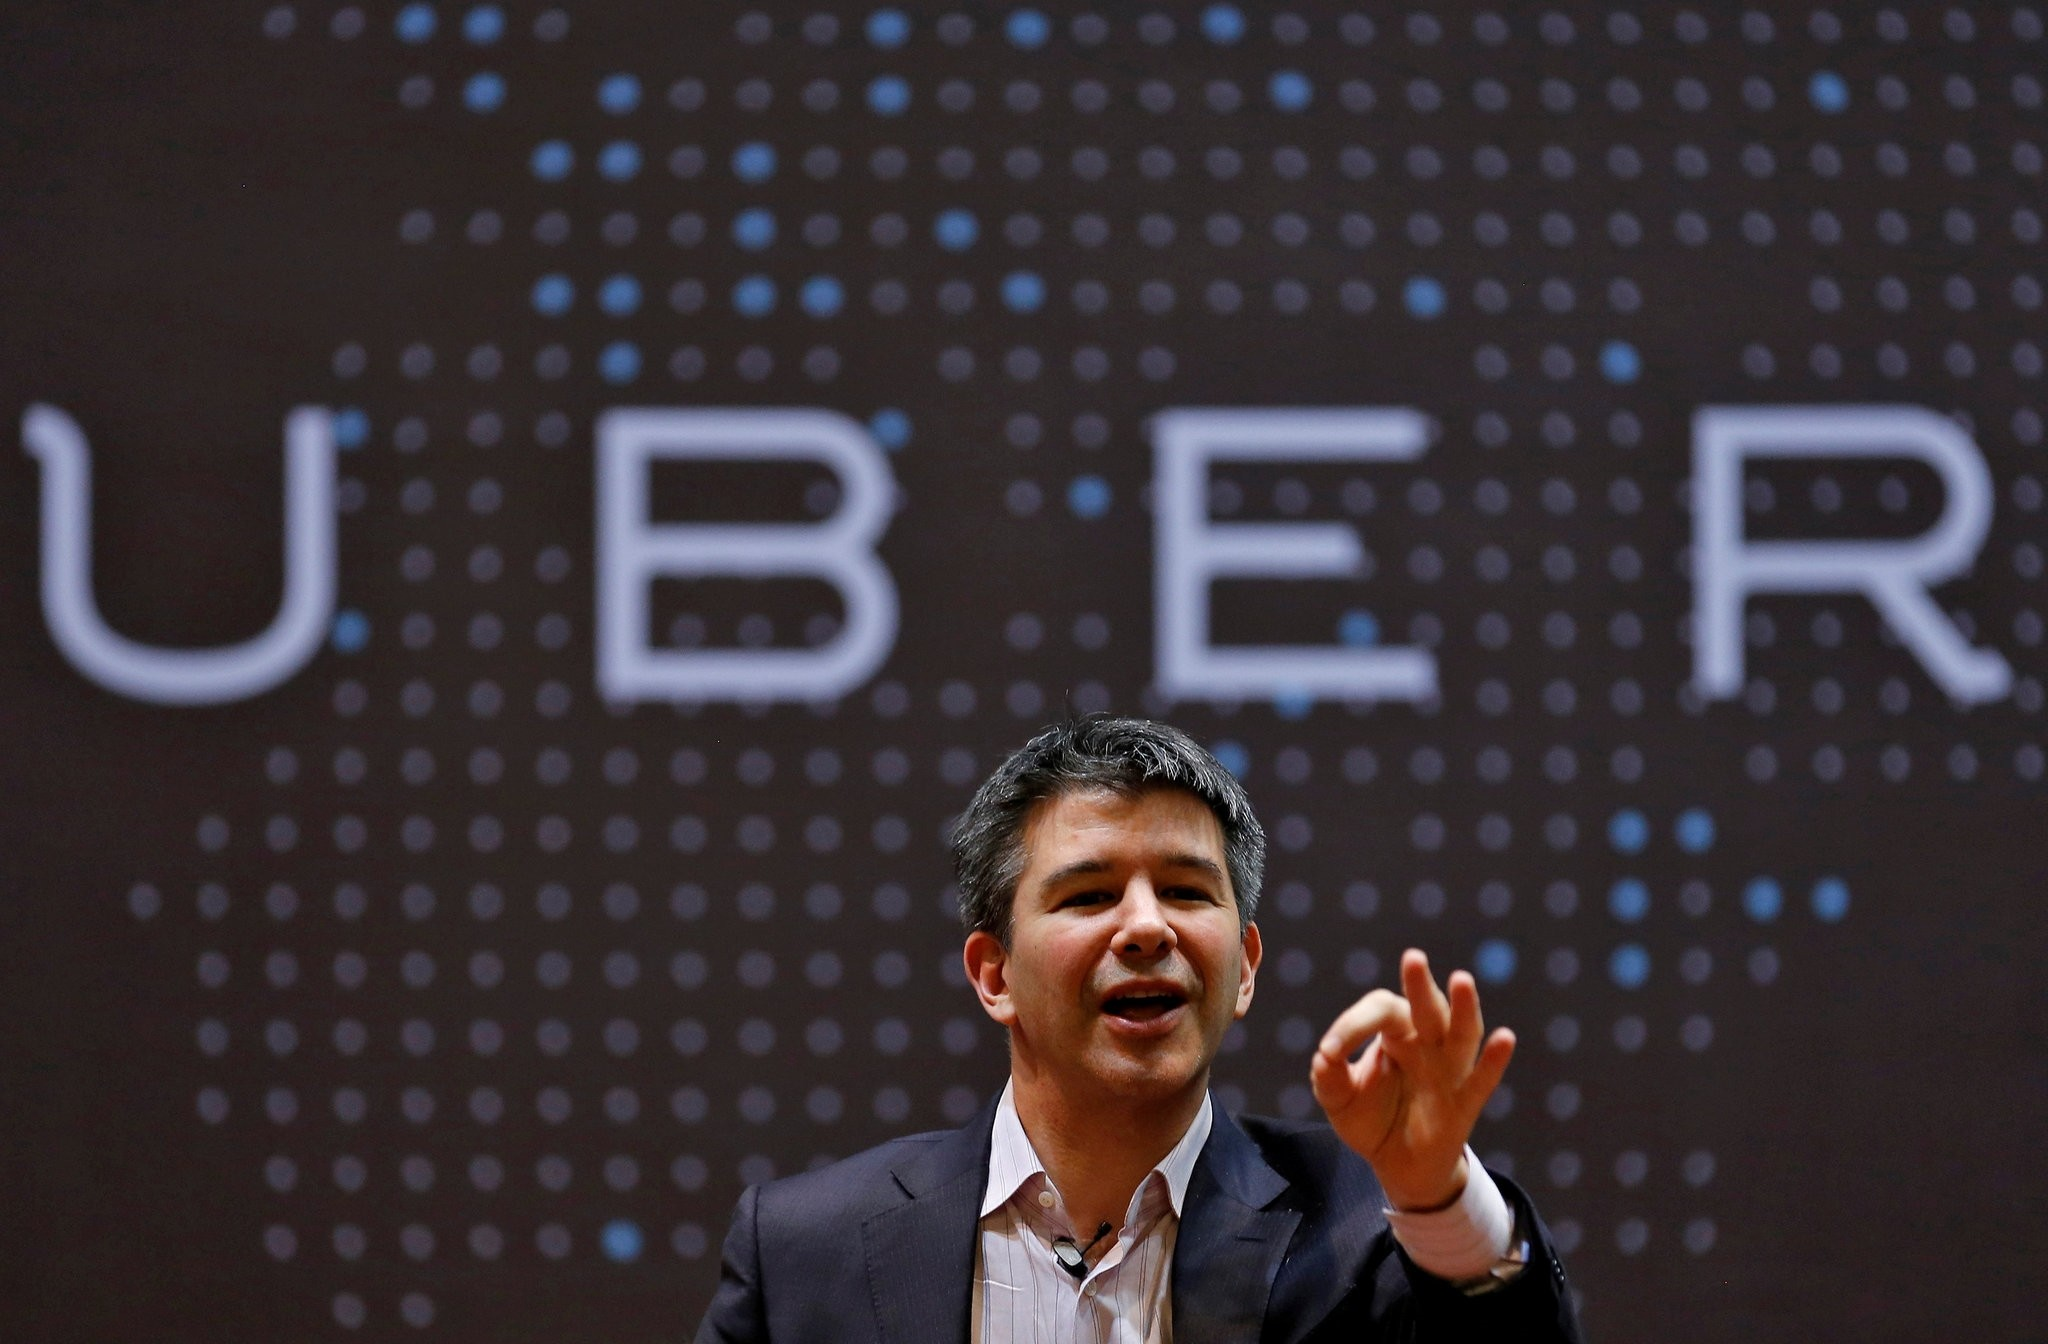 Uber CEO Travis Kalanick speaks to students during an interaction at the Indian Institute of Technology (IIT) campus in Mumbai, India, January 19, 2016. (REUTERS Photo)